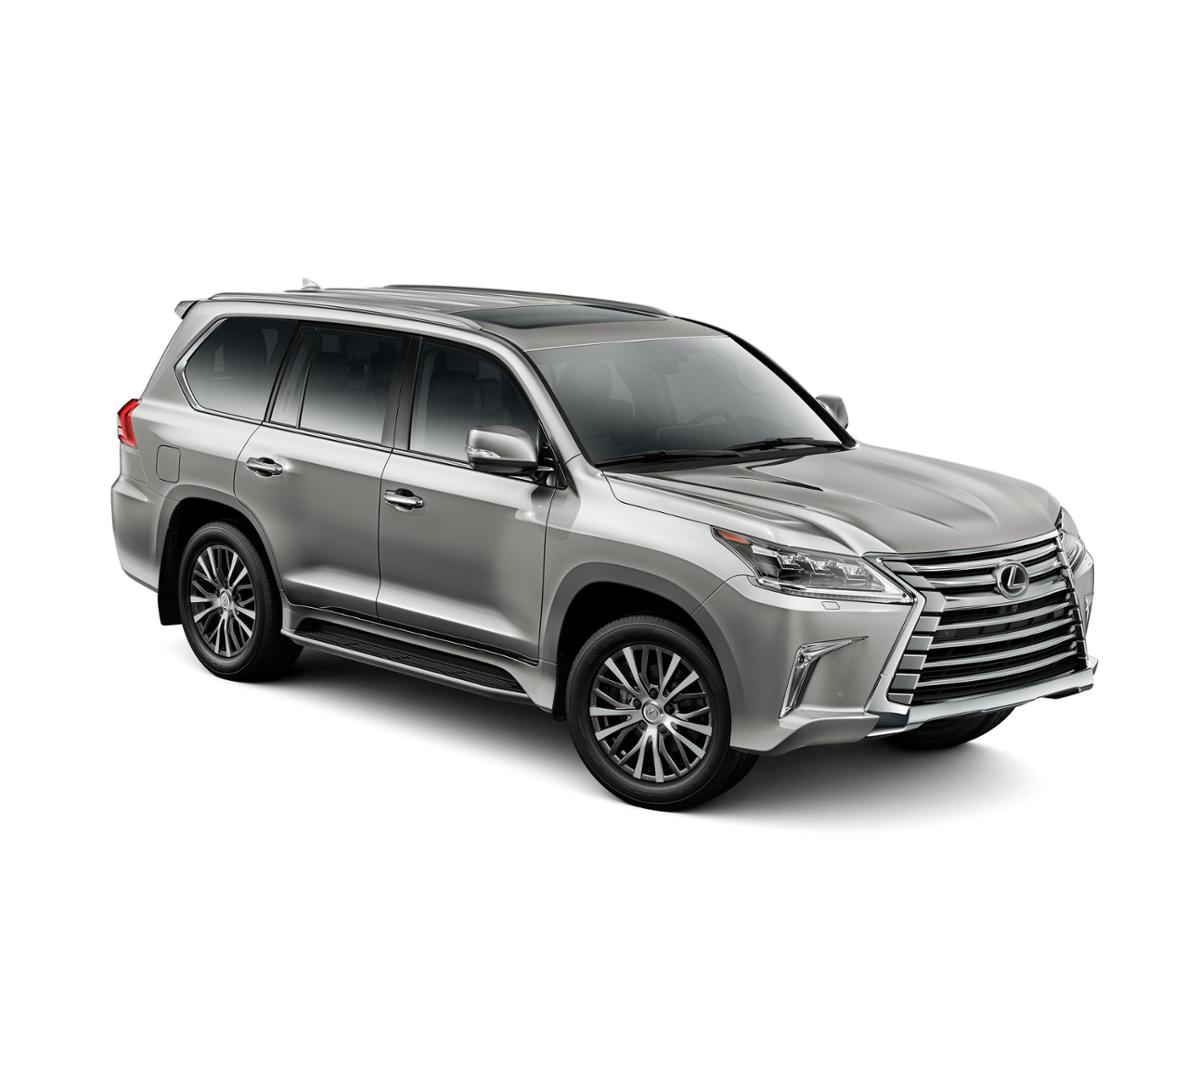 2019 Lexus LX 570 Vehicle Photo in Larchmont, NY 10538